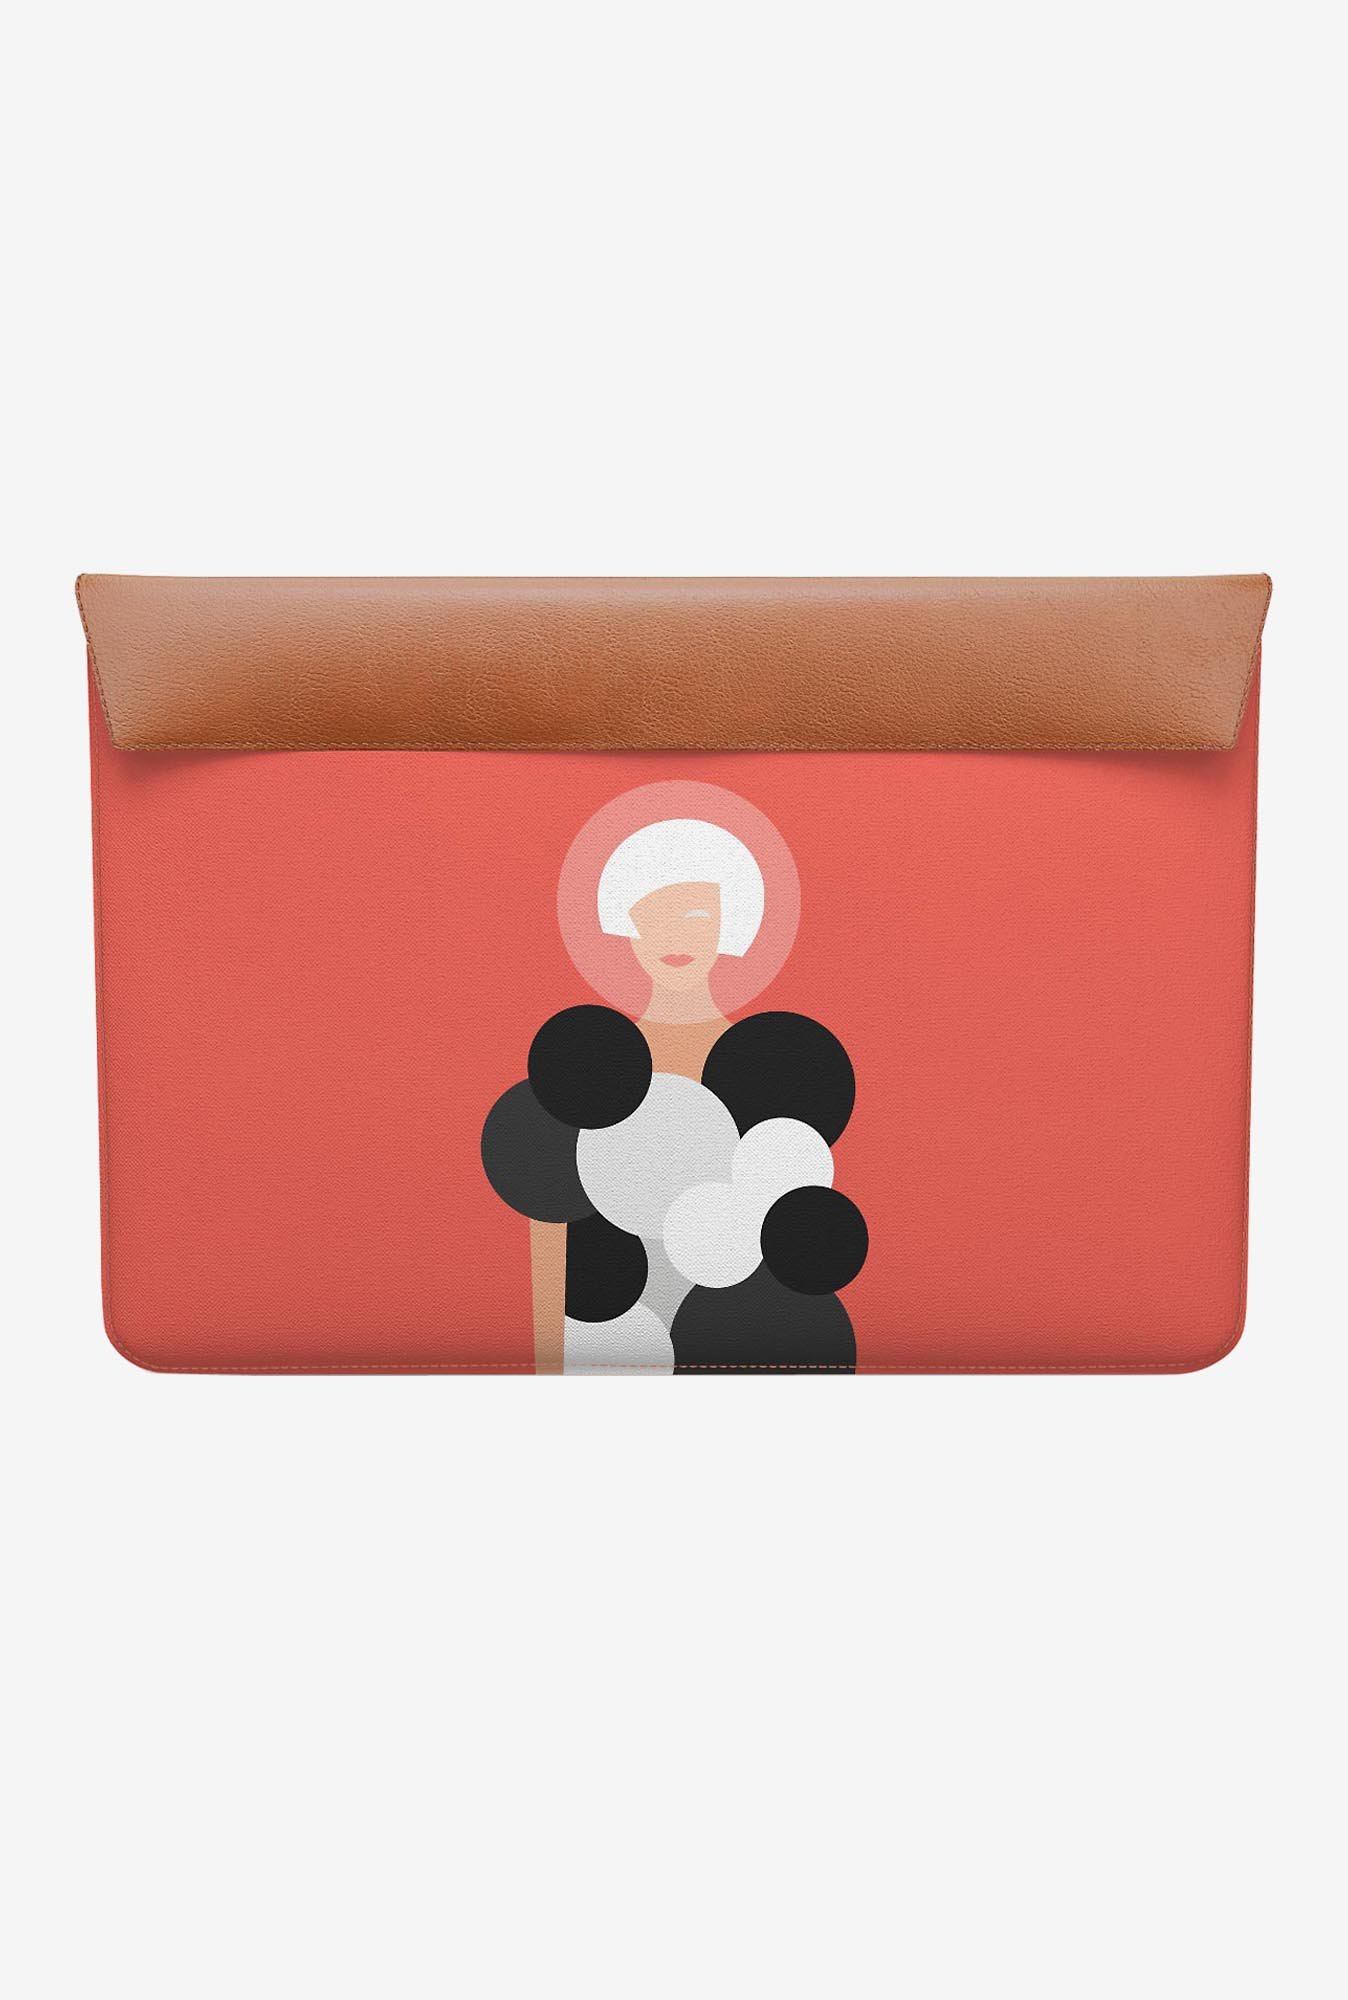 DailyObjects Space Helmet MacBook Air 11 Envelope Sleeve